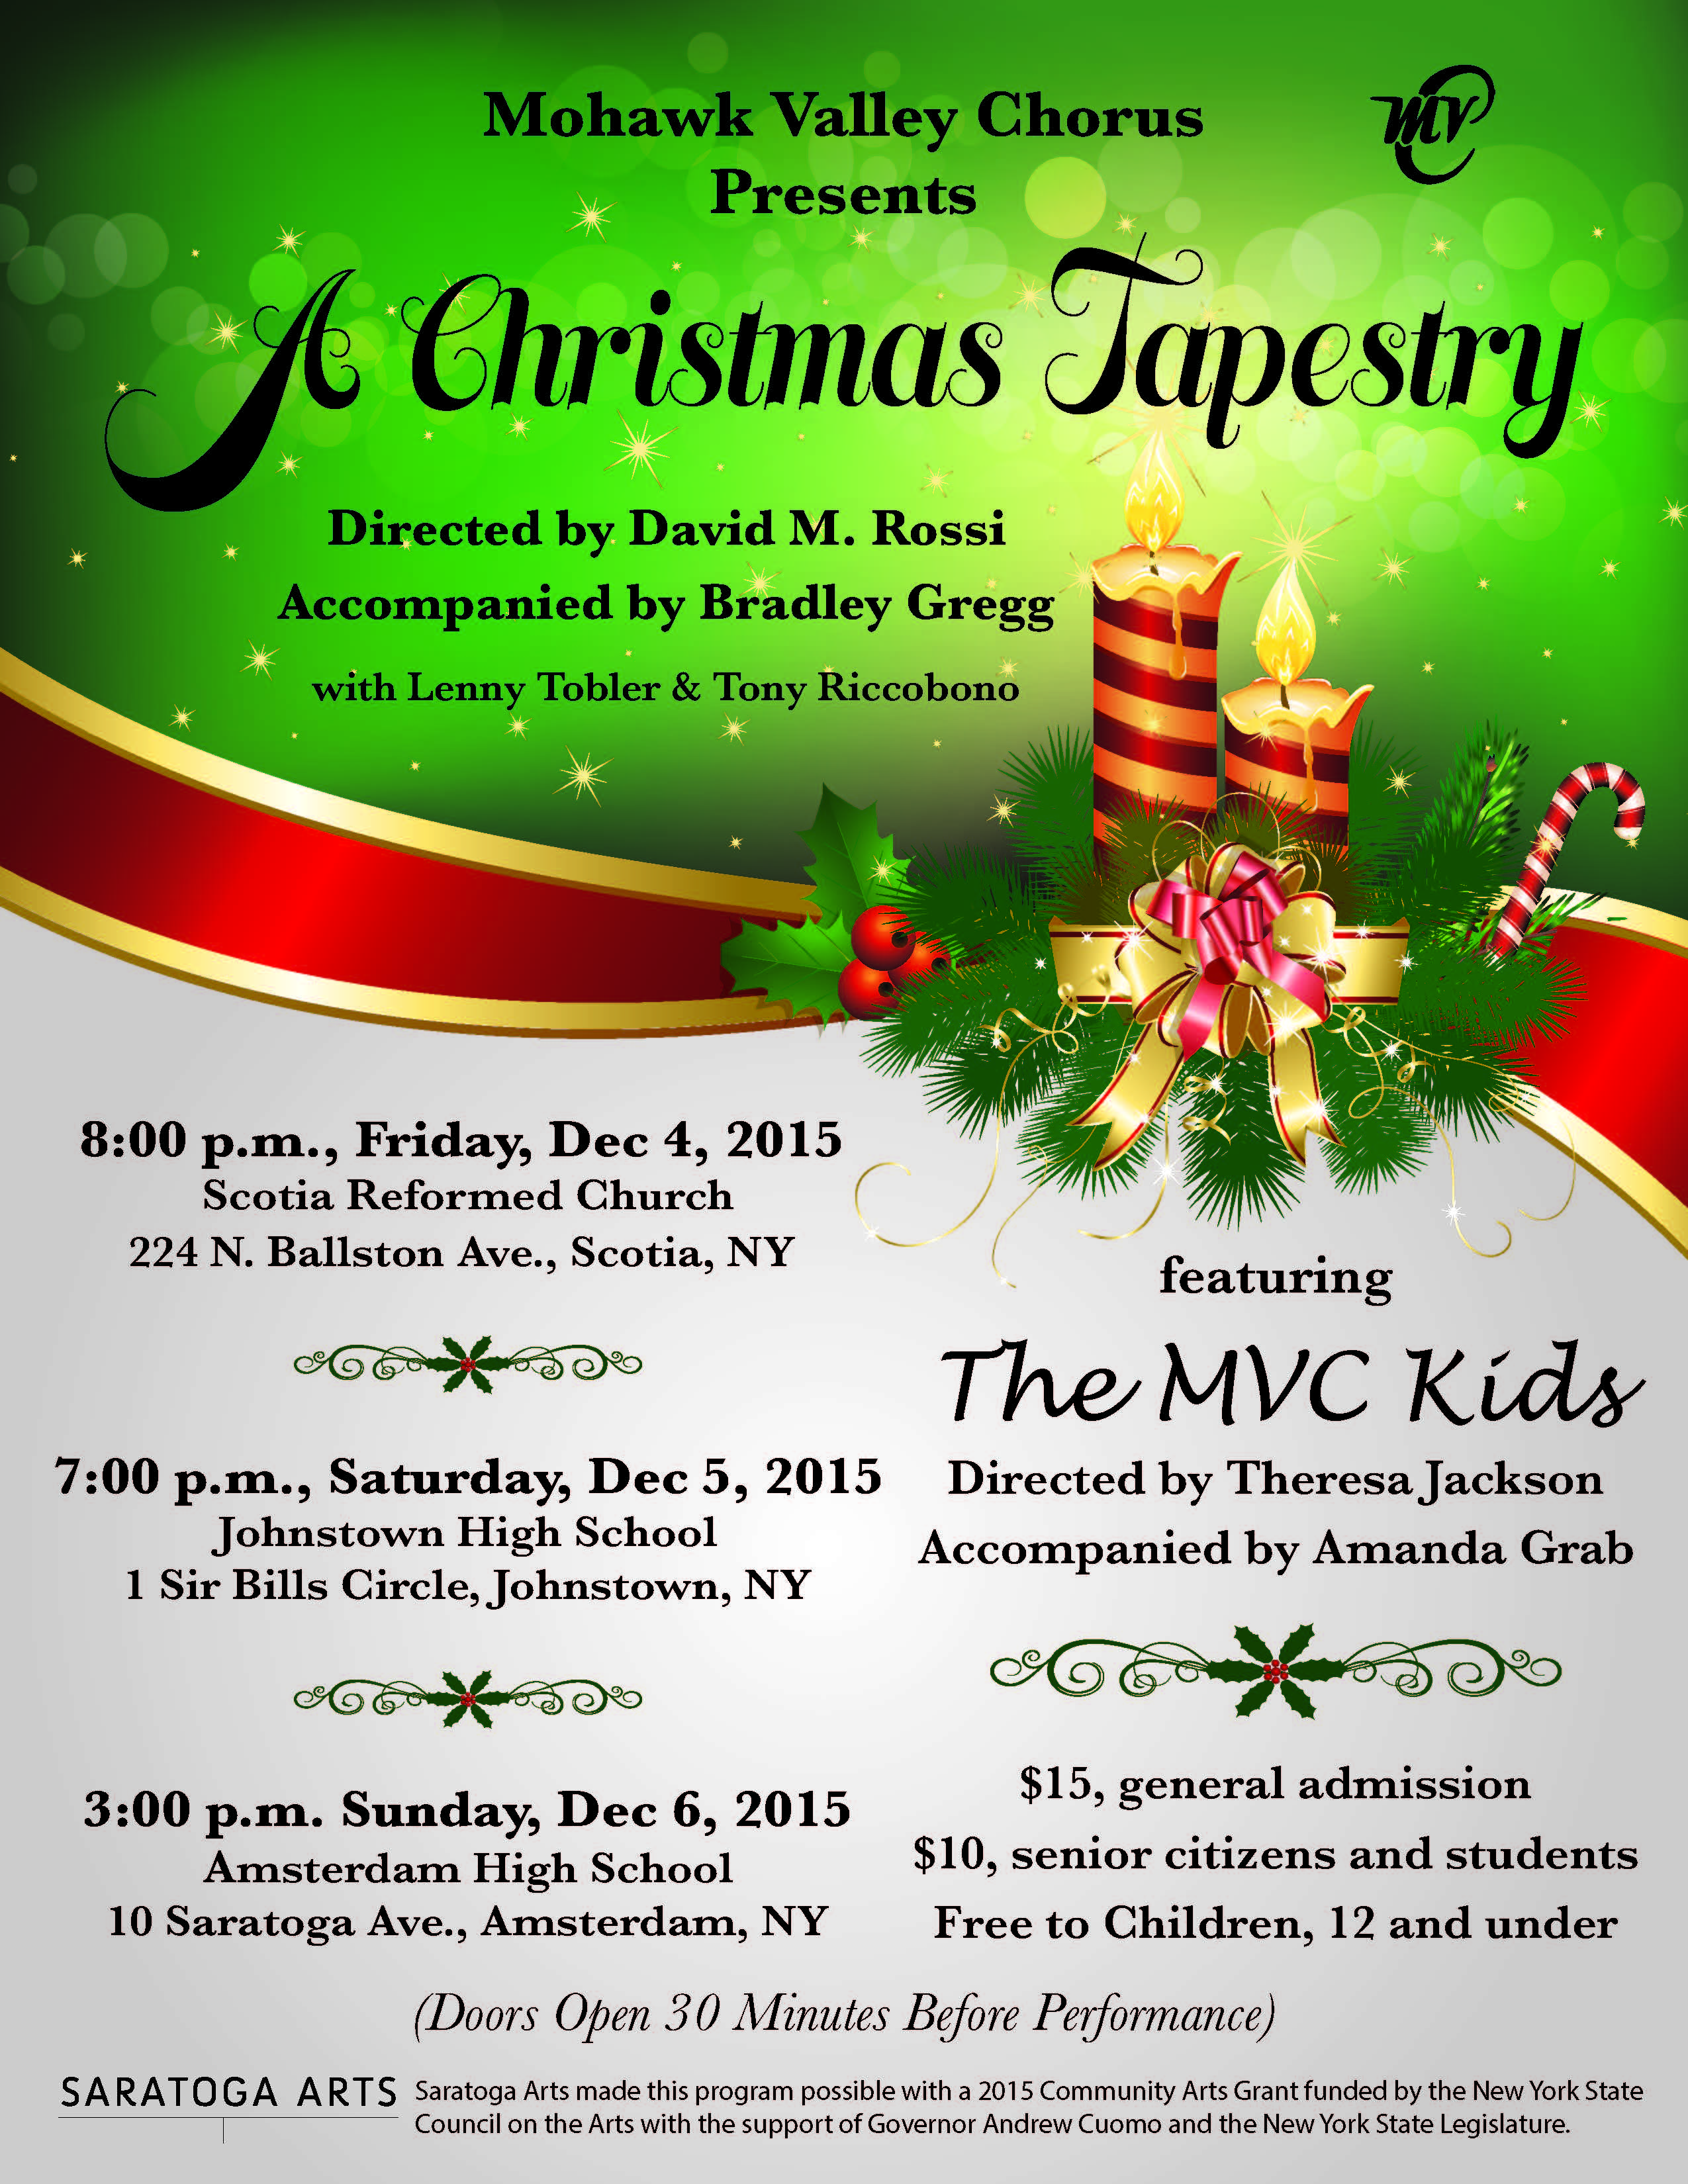 a christmas tapestry not only opens the mohawk valley chorus holiday season but also its 80th anniversary year celebration and a big musical holiday - Childrens Christmas Musicals For Church